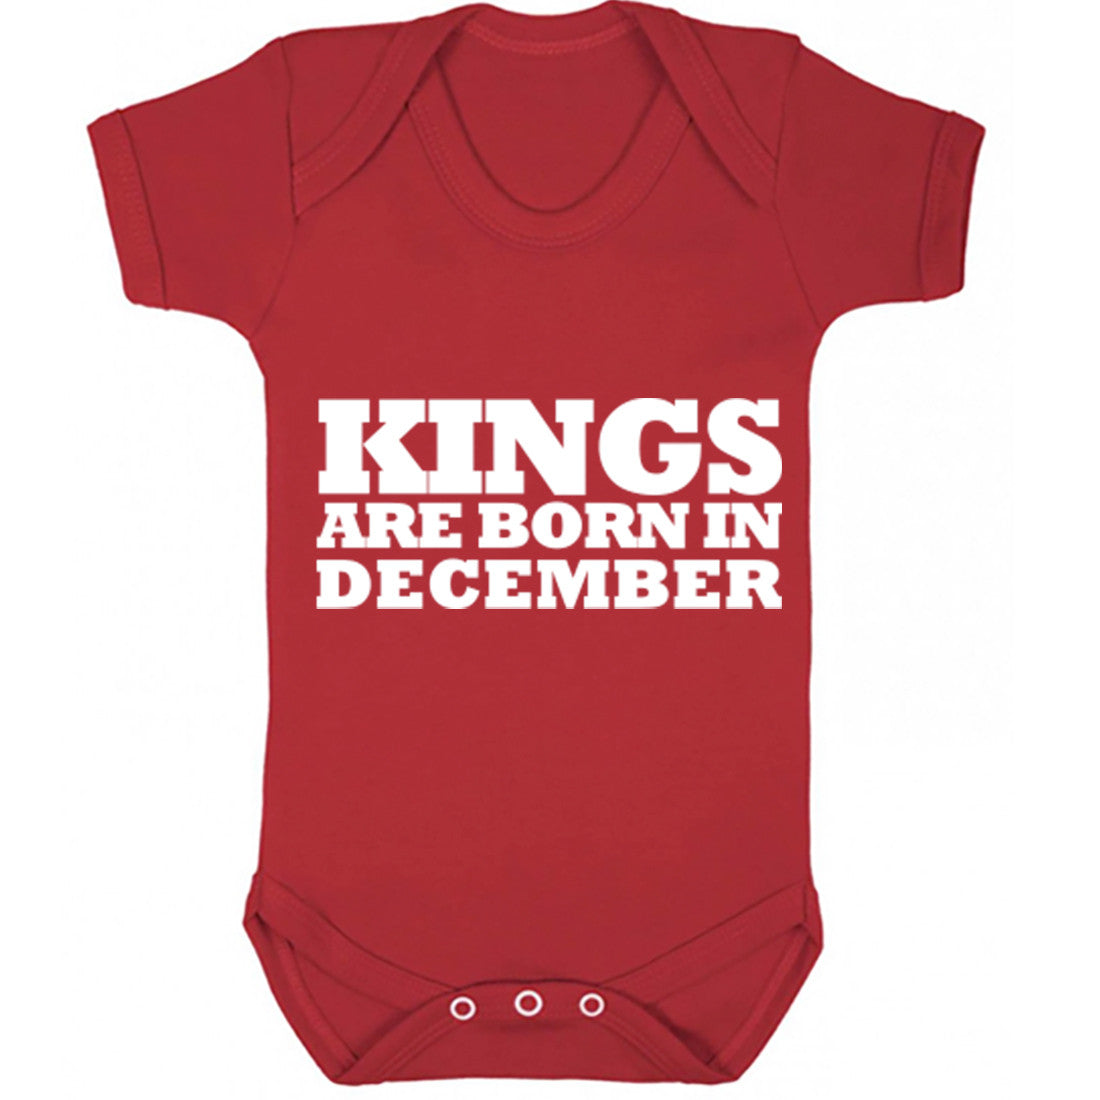 Kings Are Born In December Baby Vest K1695 - Illustrated Identity Ltd.